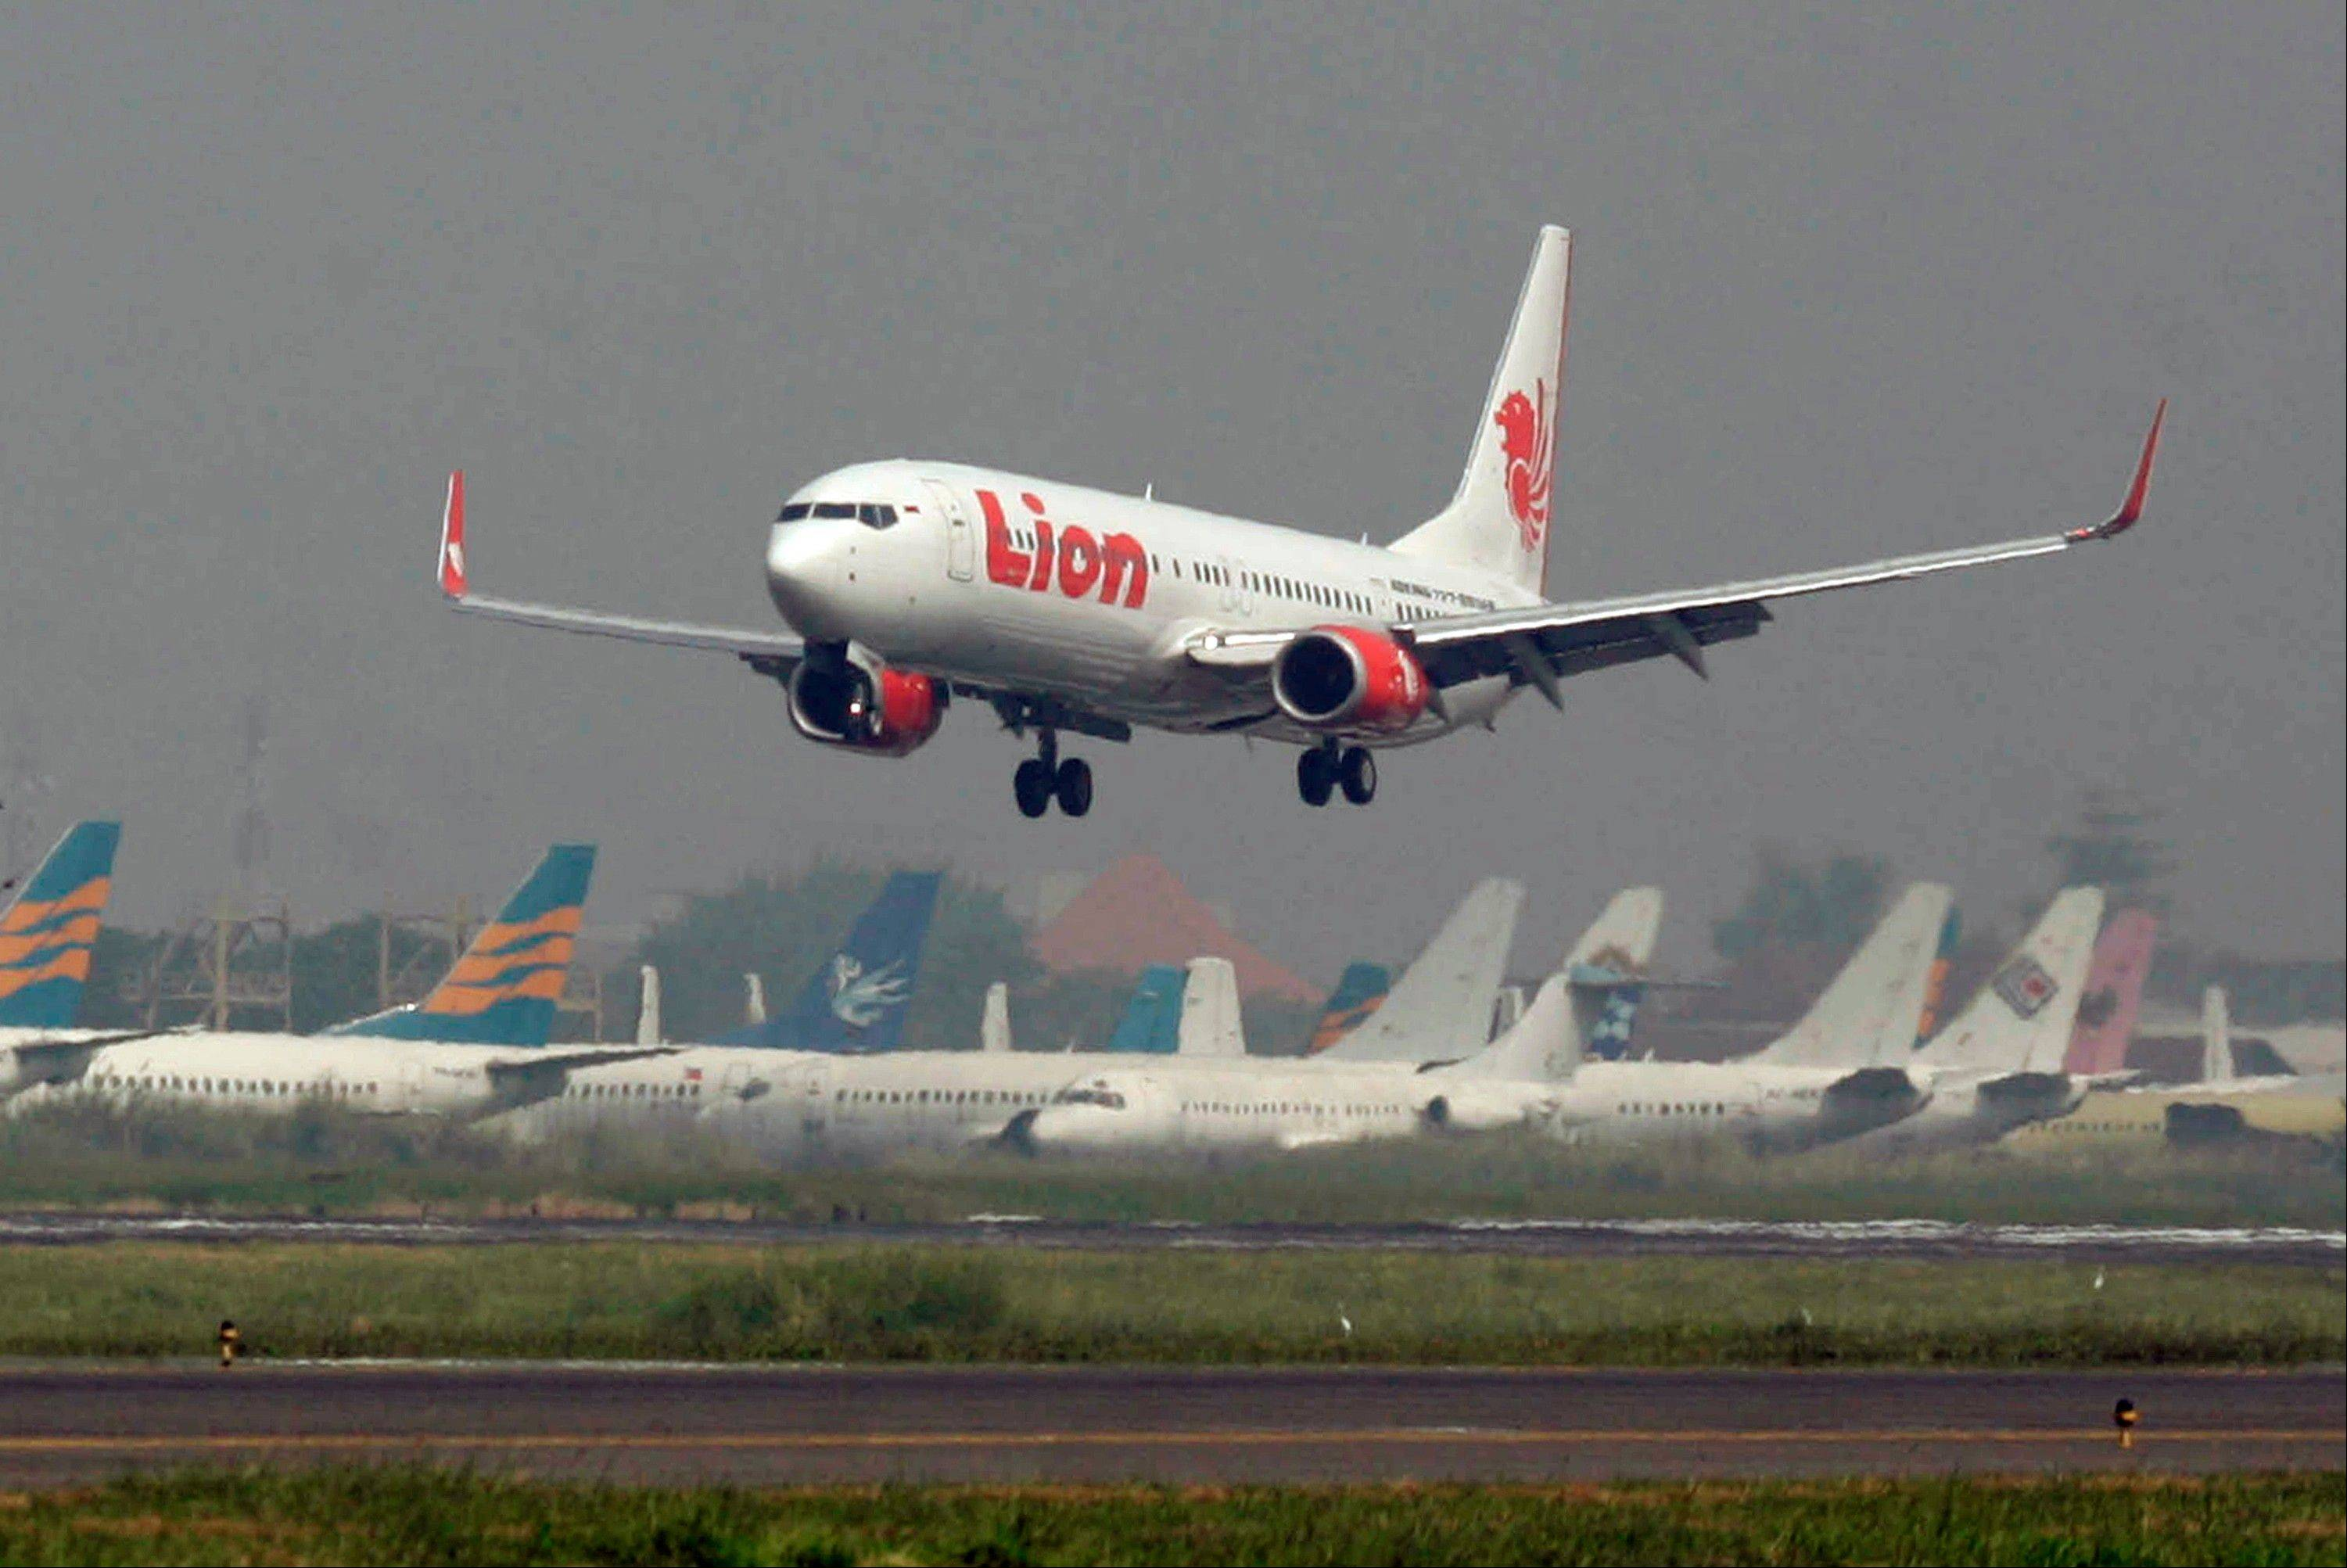 Indonesia's top discount carrier, which catapulted into the global aviation spotlight with record deals to buy Airbus and Boeing planes, is taking the battle for Asia's budget-minded travelers to the backyard of the airline that helped pioneer low cost flights in the region.